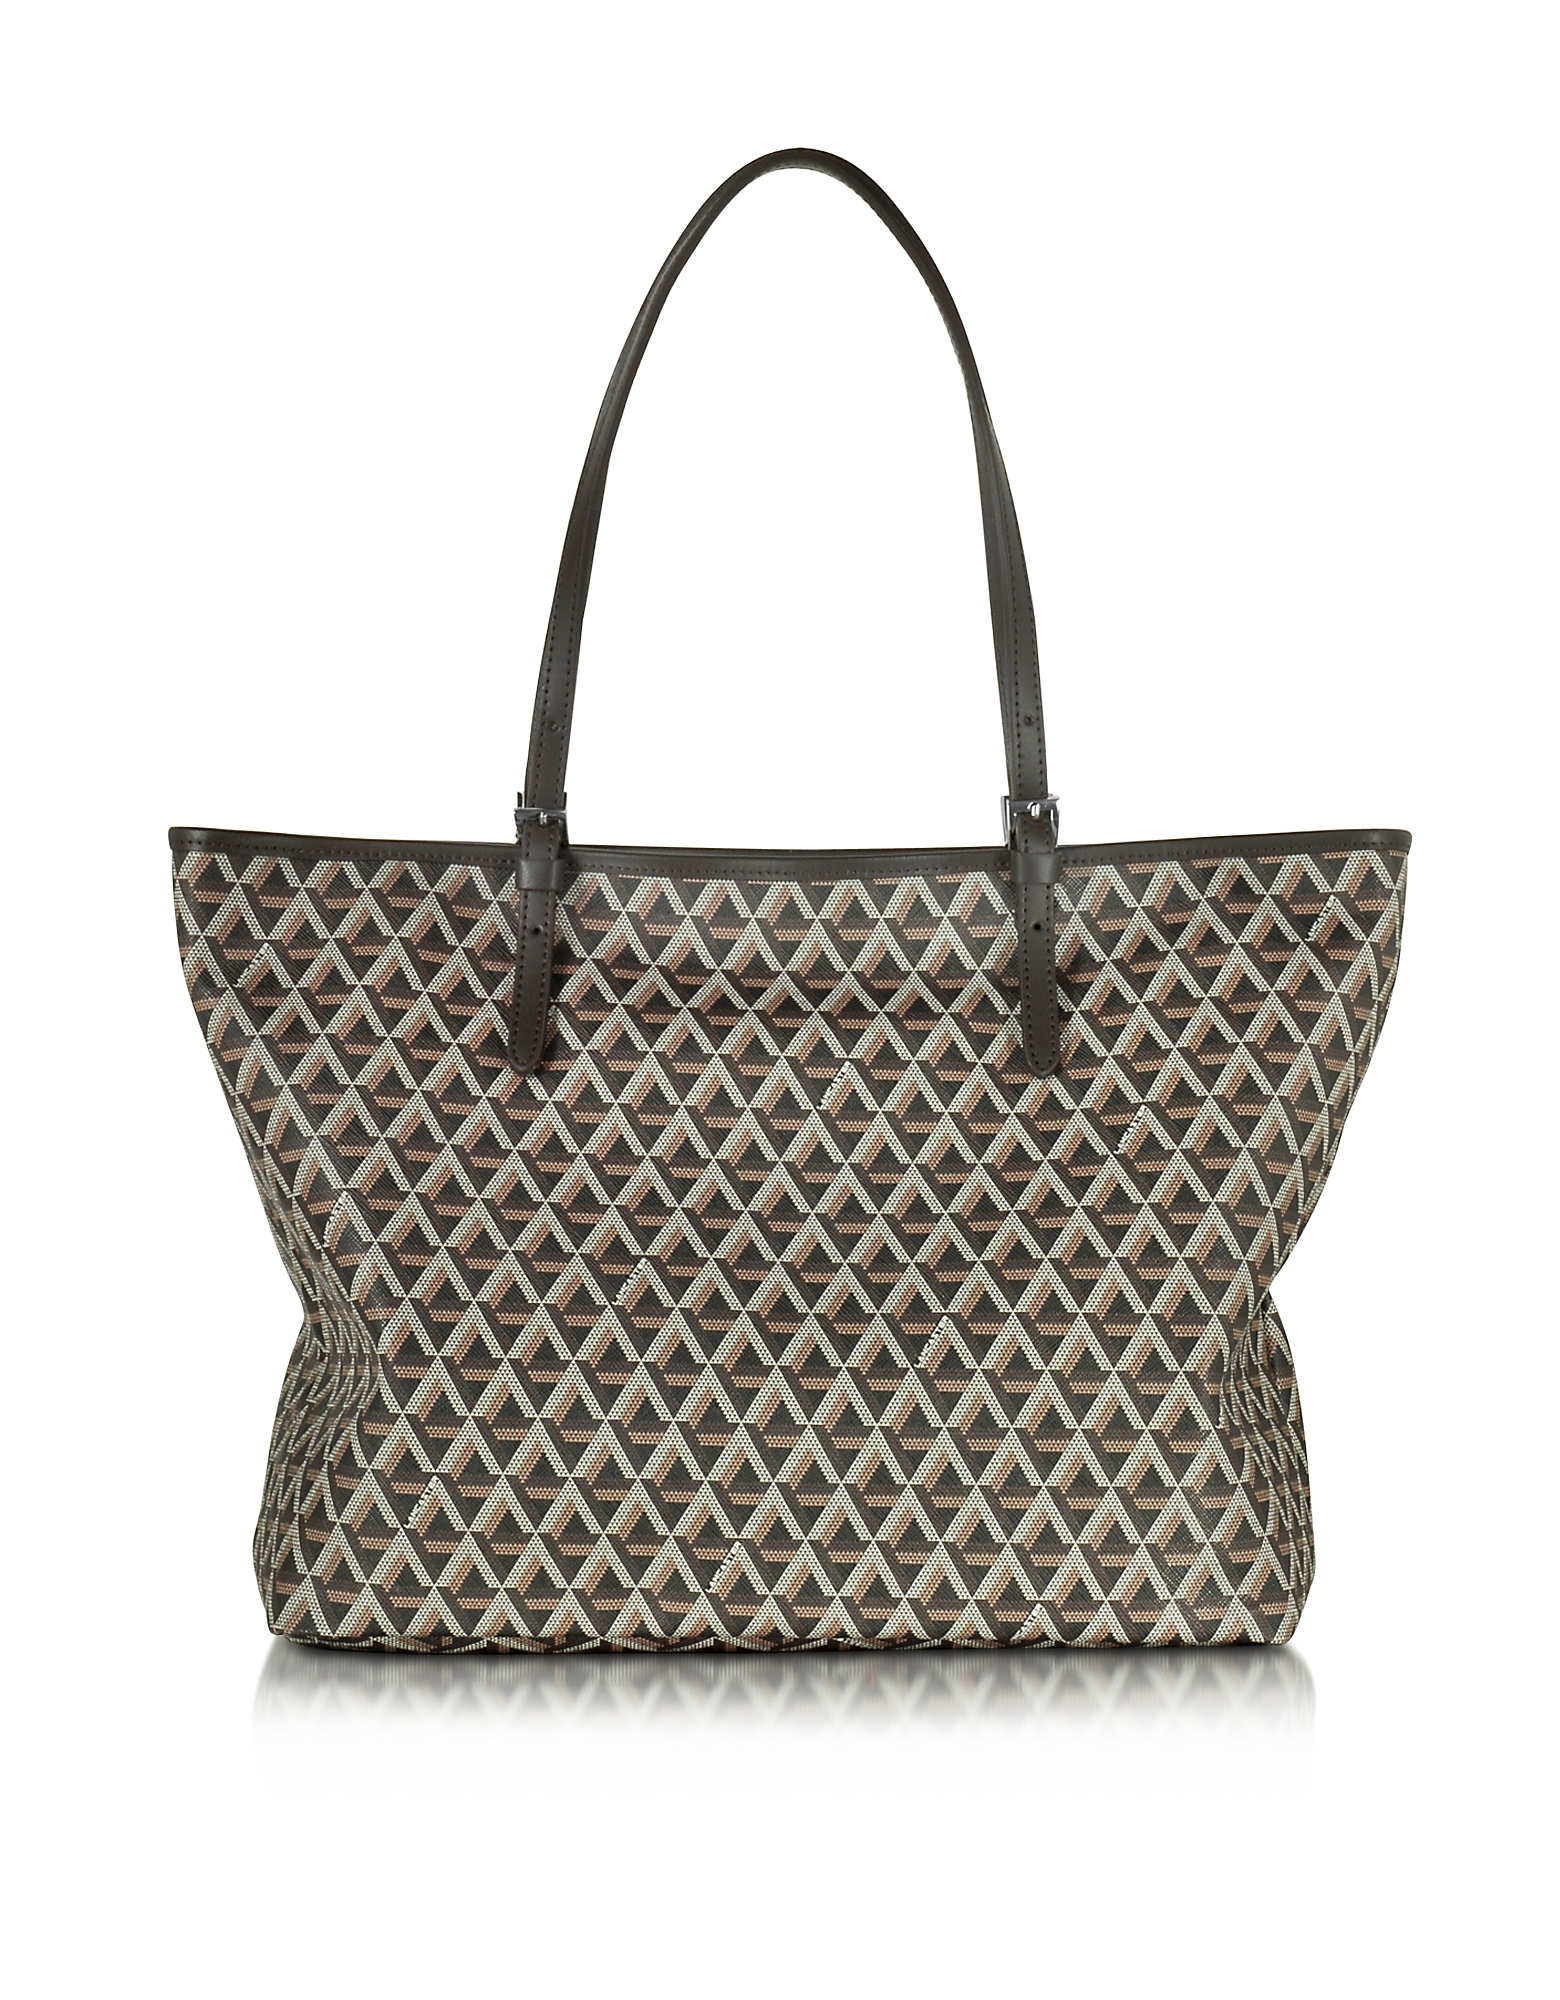 Lancaster Paris Handbags, Ikon Printed Coated Canvas and Leather Tote